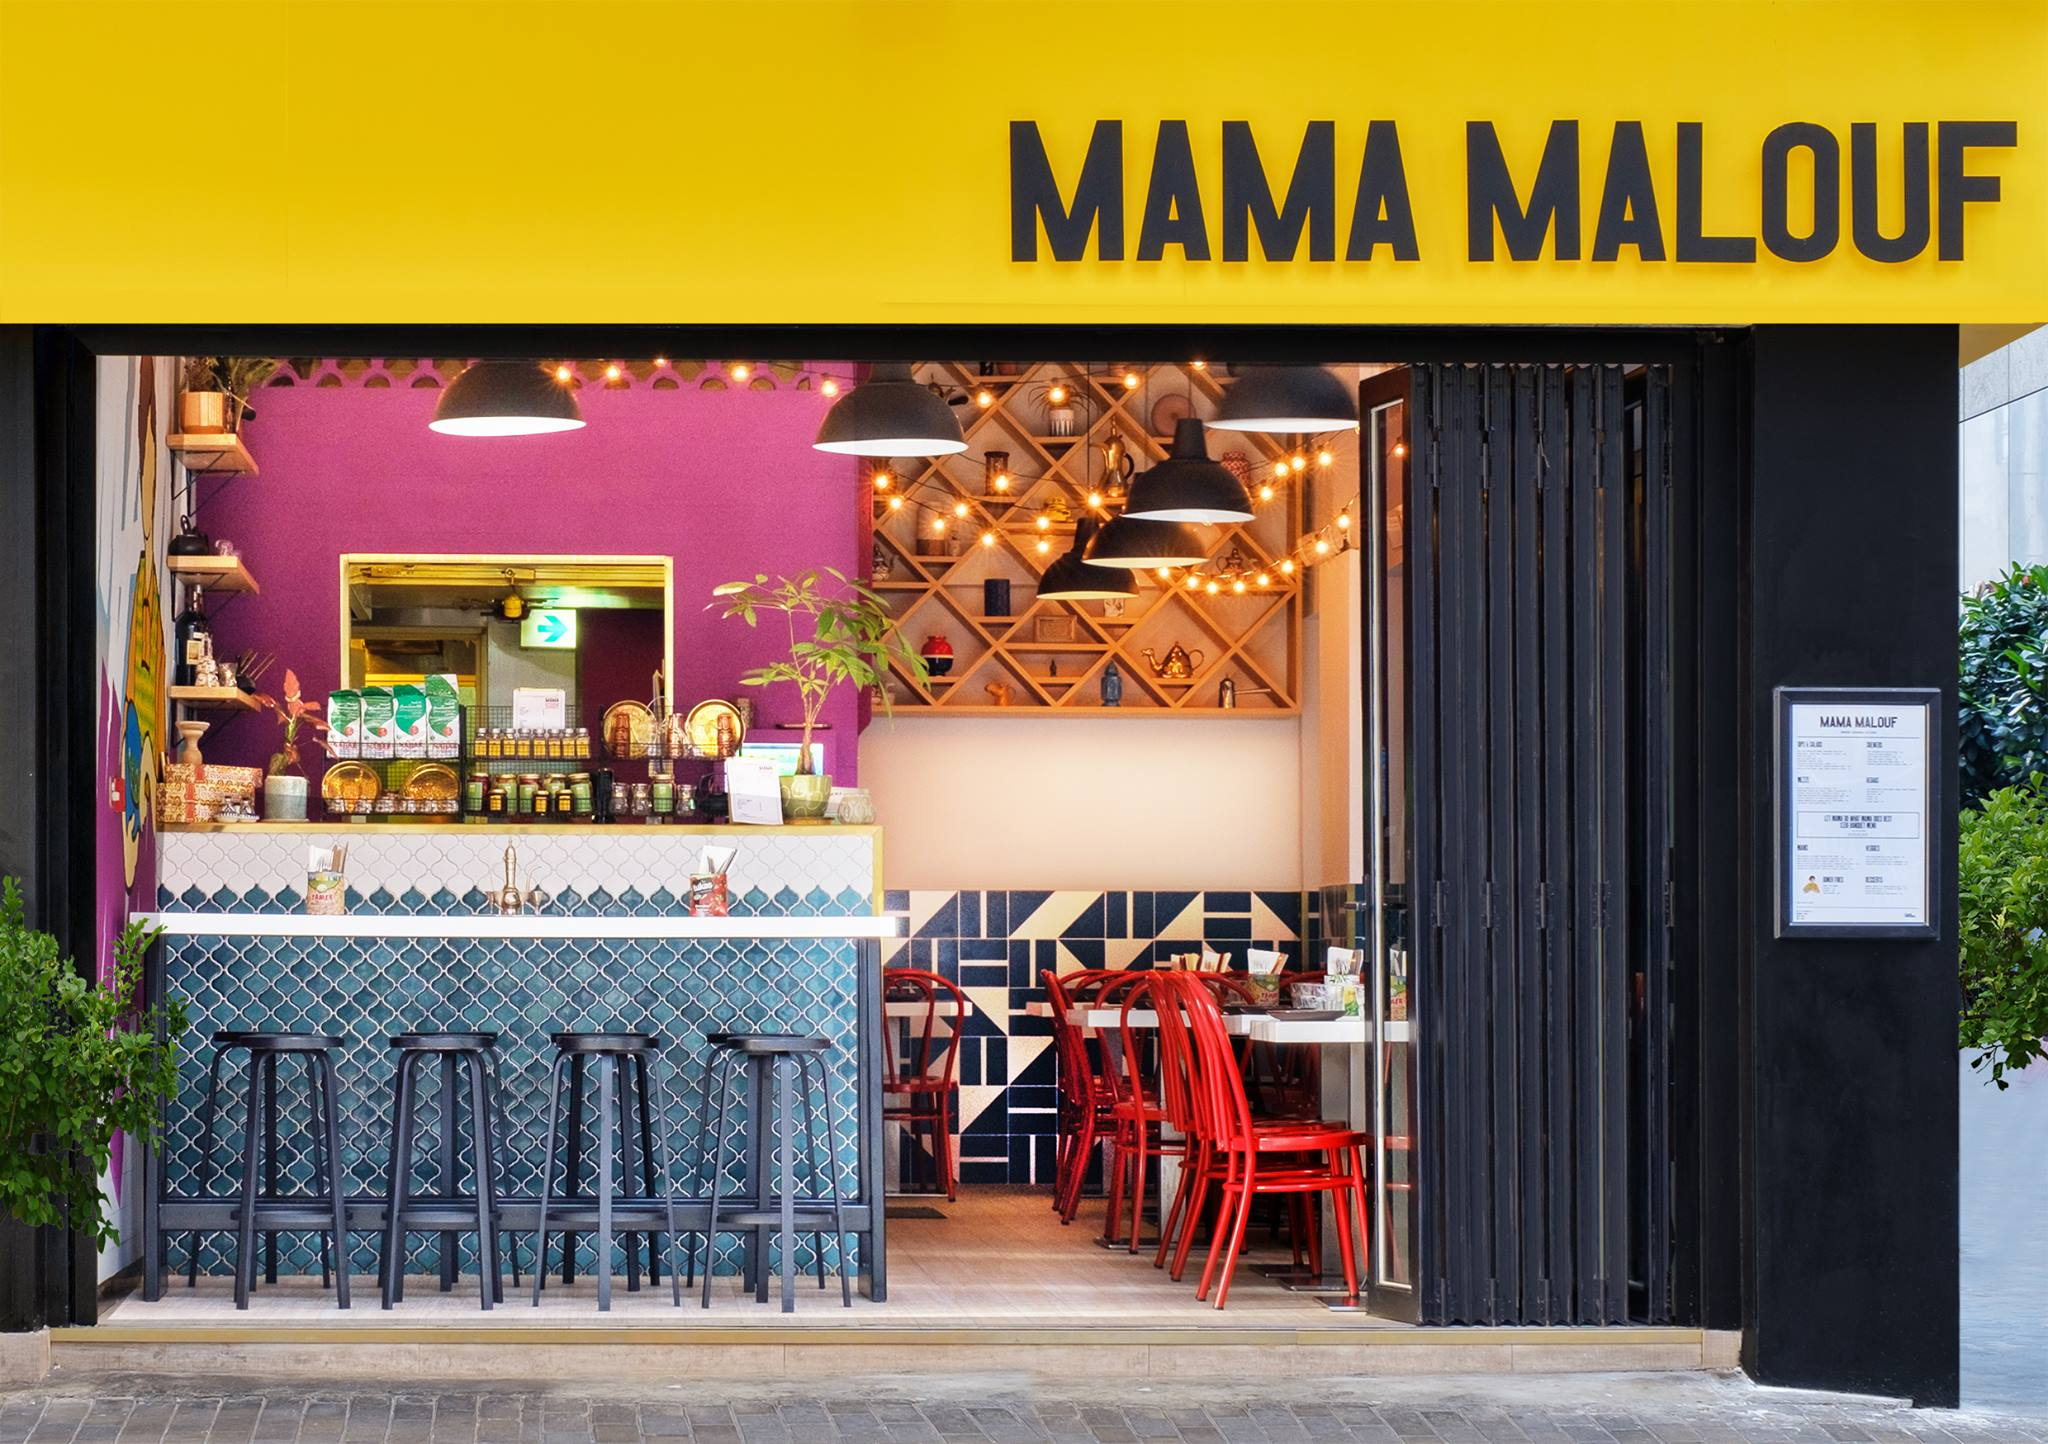 Mama Malouf, one of the best Middle Eastern restaurants in Hong Kong.